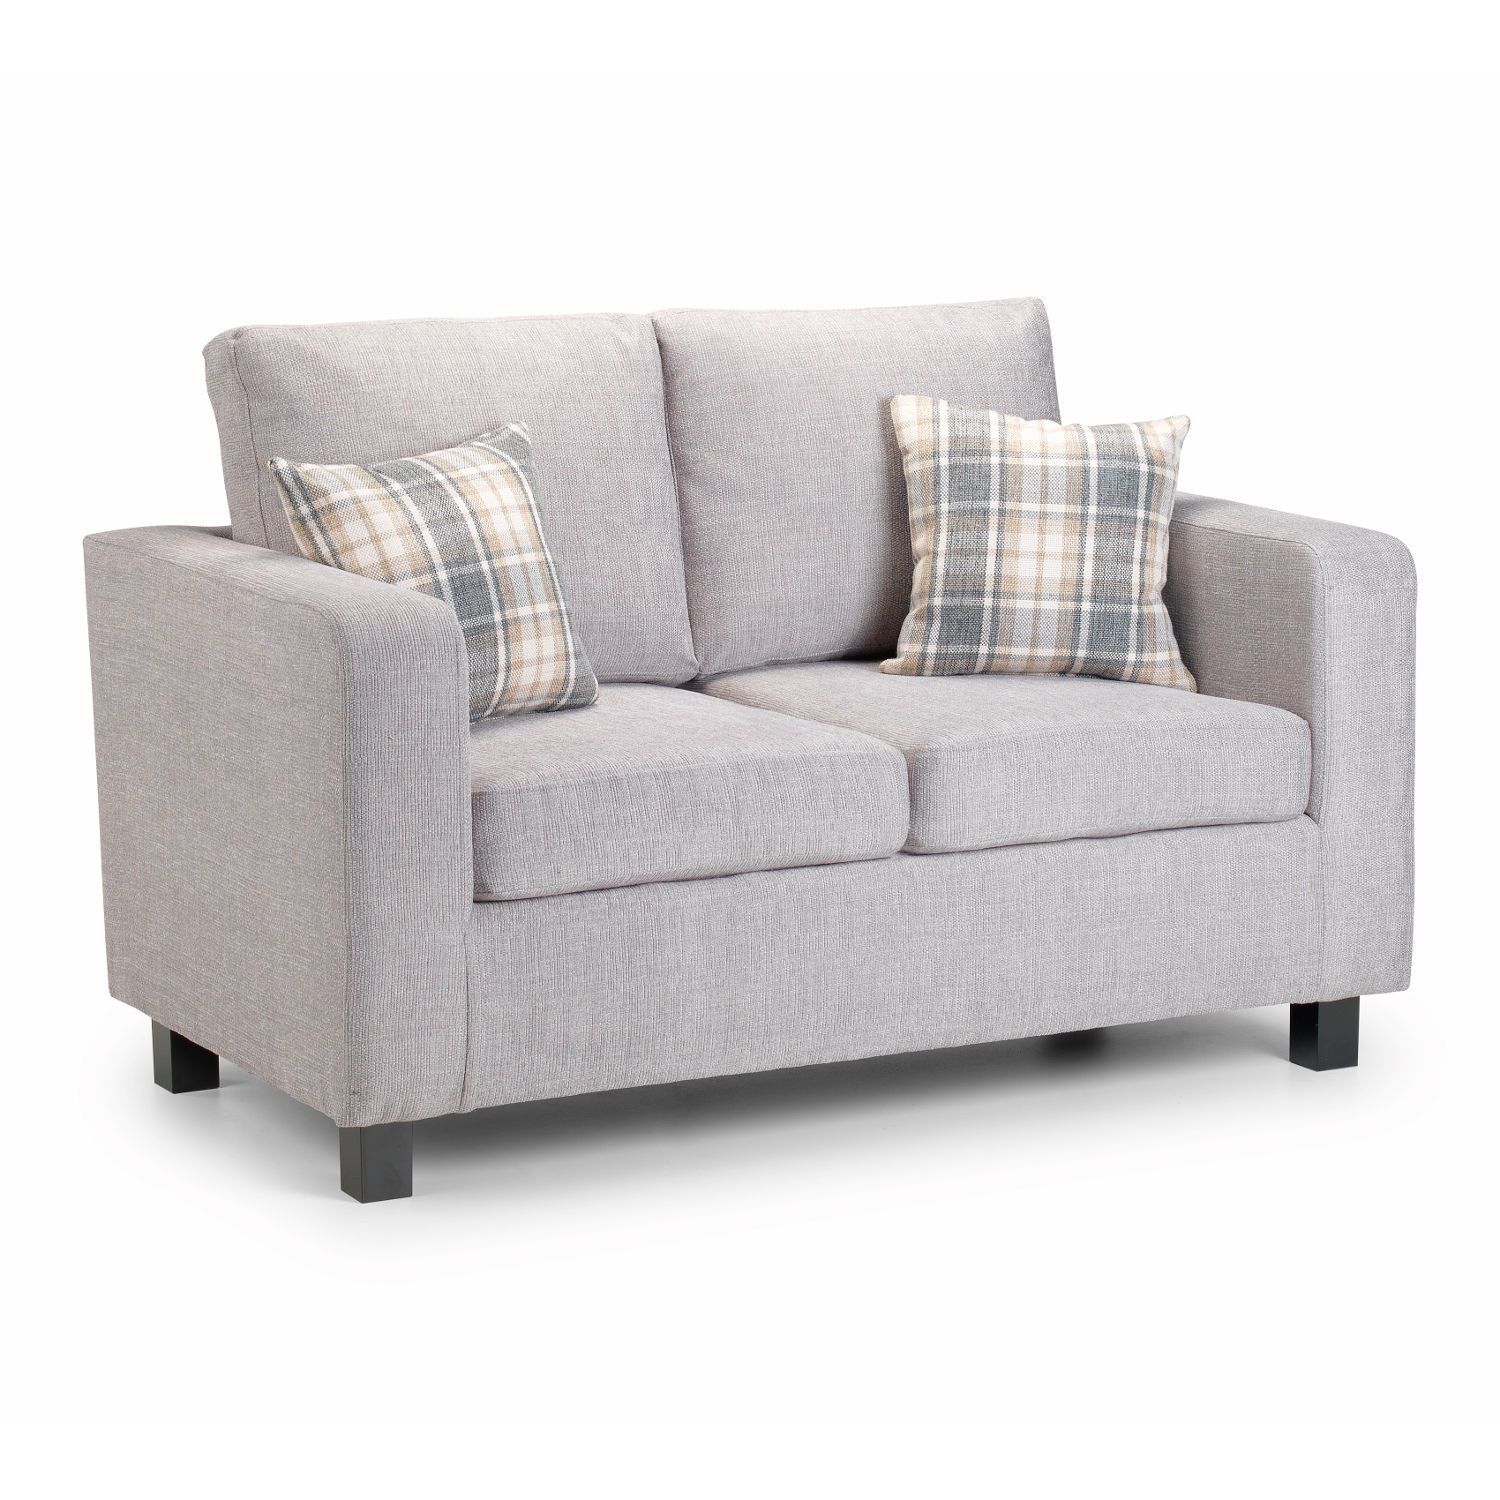 Wilson 2 Seater Fabric Sofa – Next Day Delivery Wilson 2 ...